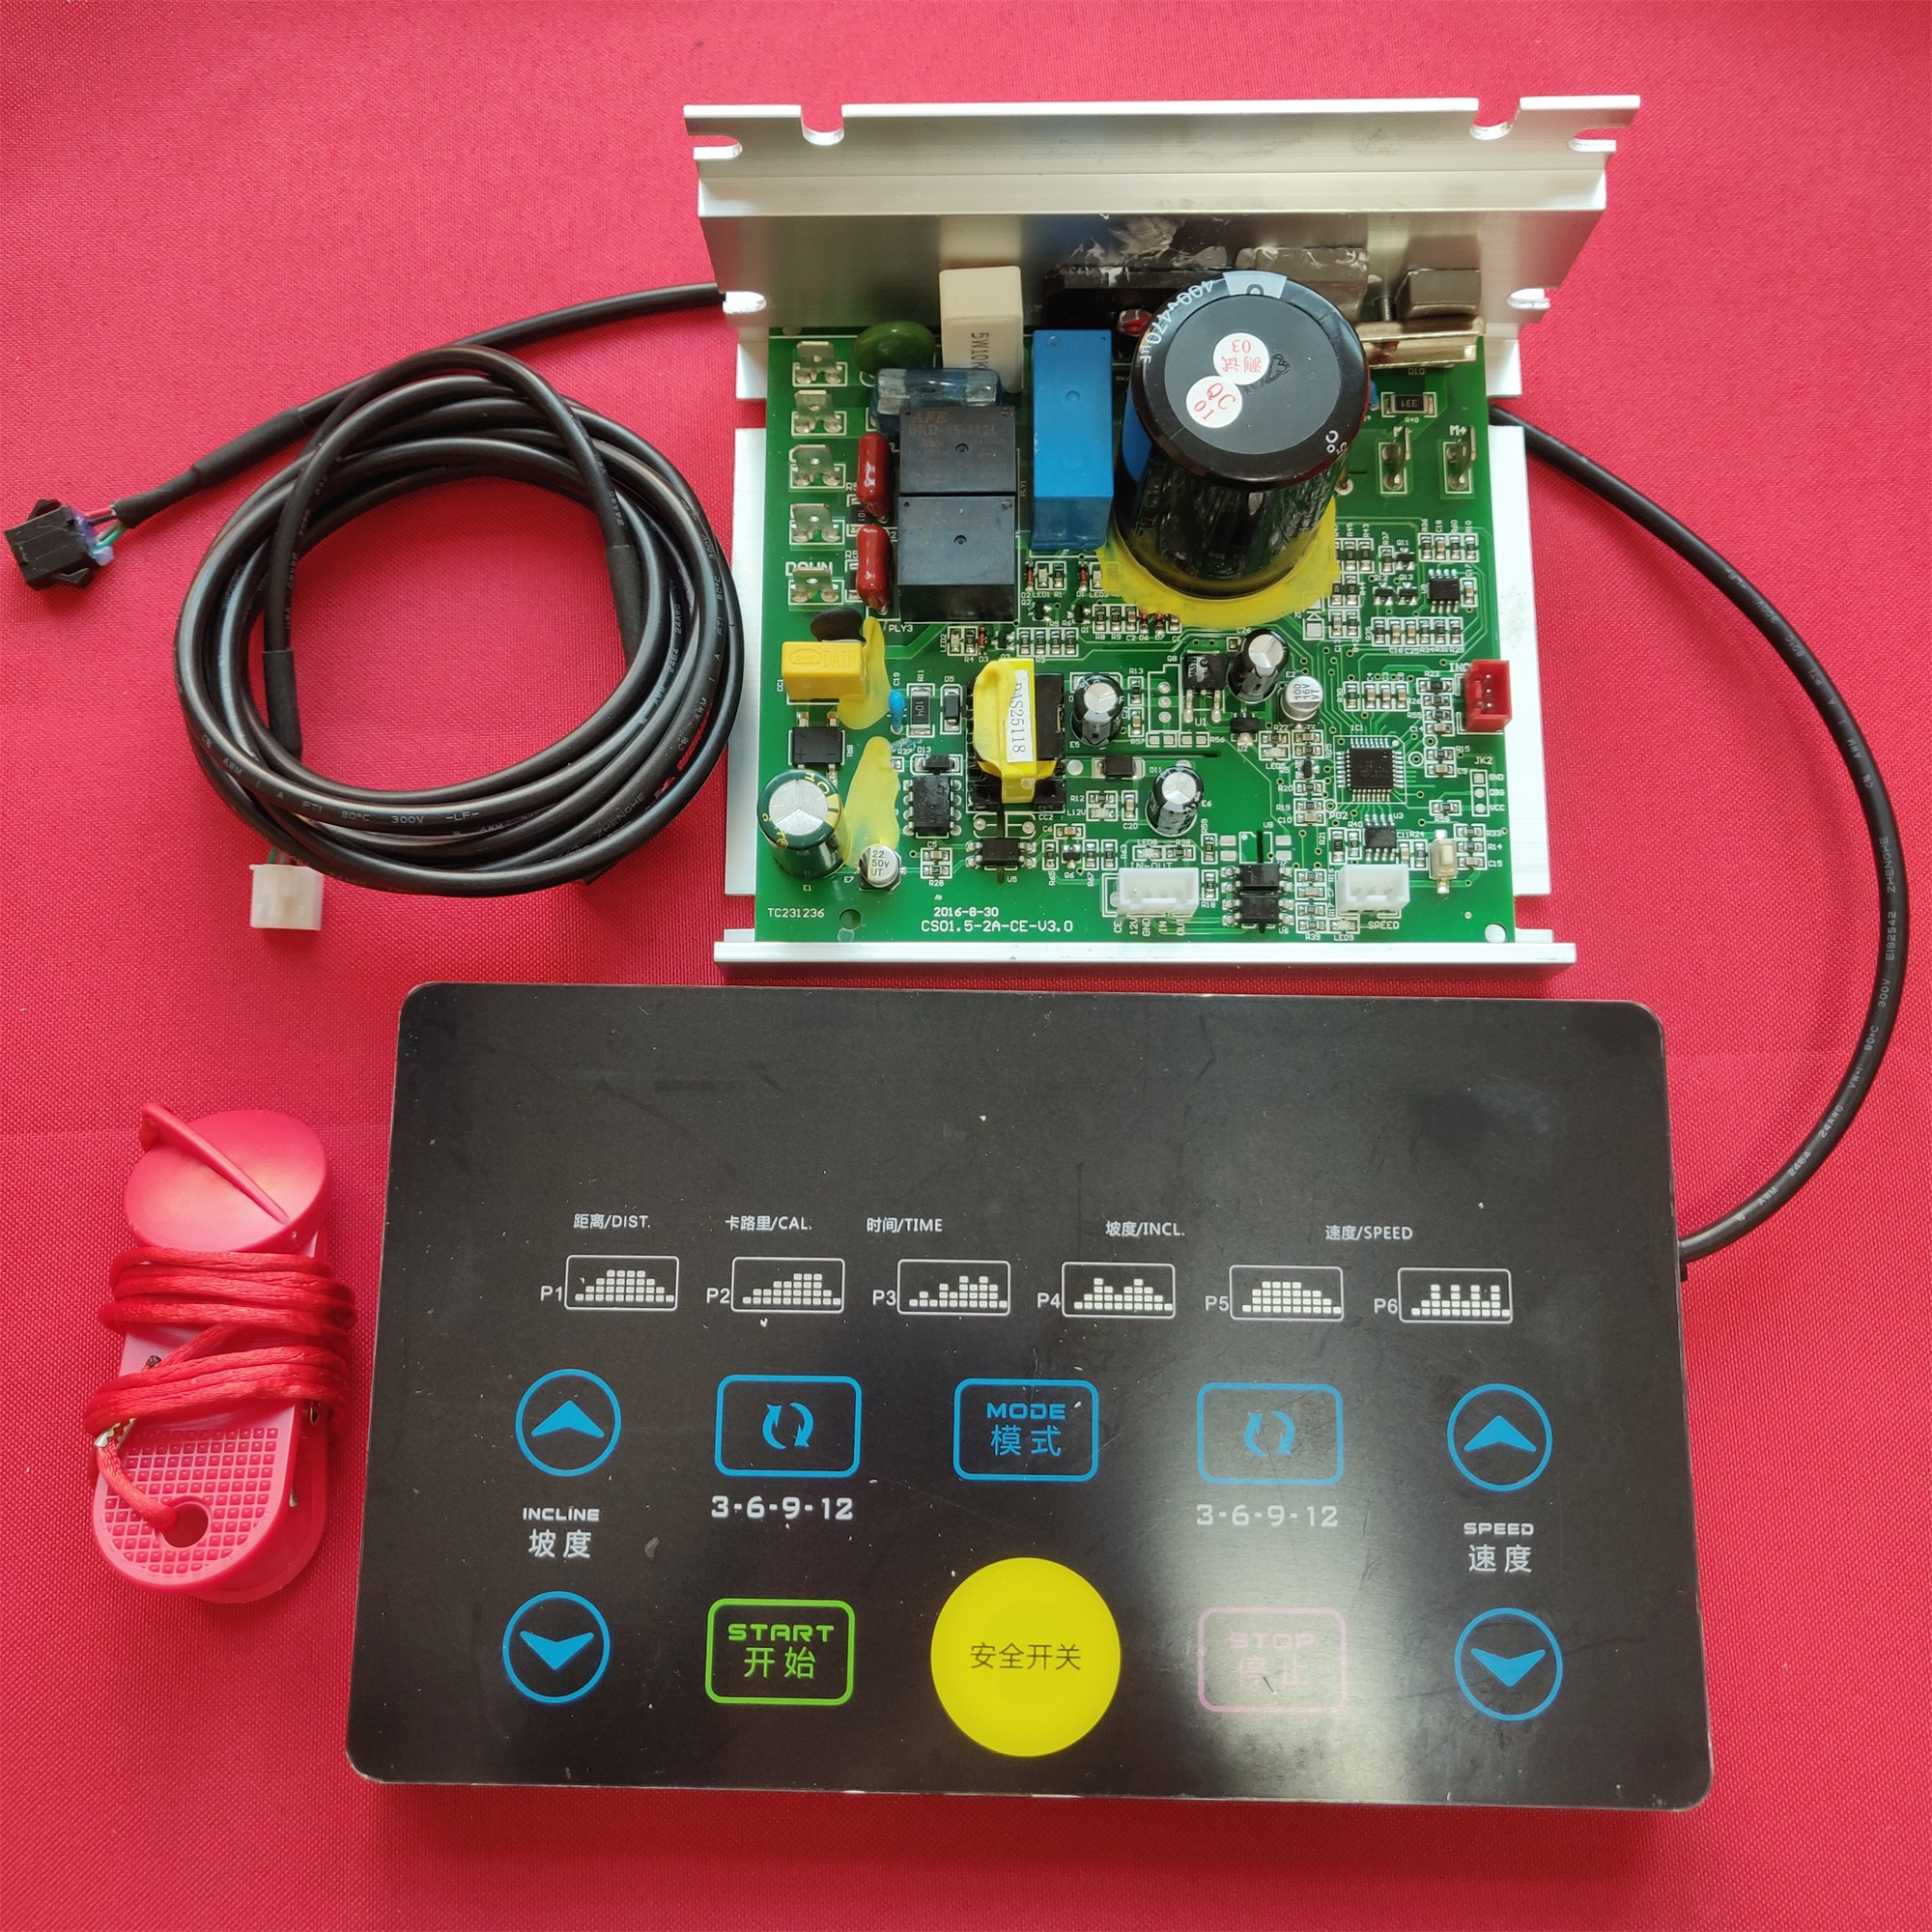 general use Universal Treadmill Circuit board Treadmill Console display Treadmill motor control board controller 1HP 2.0HP motor|Replacement Parts & Accessories| |  - title=